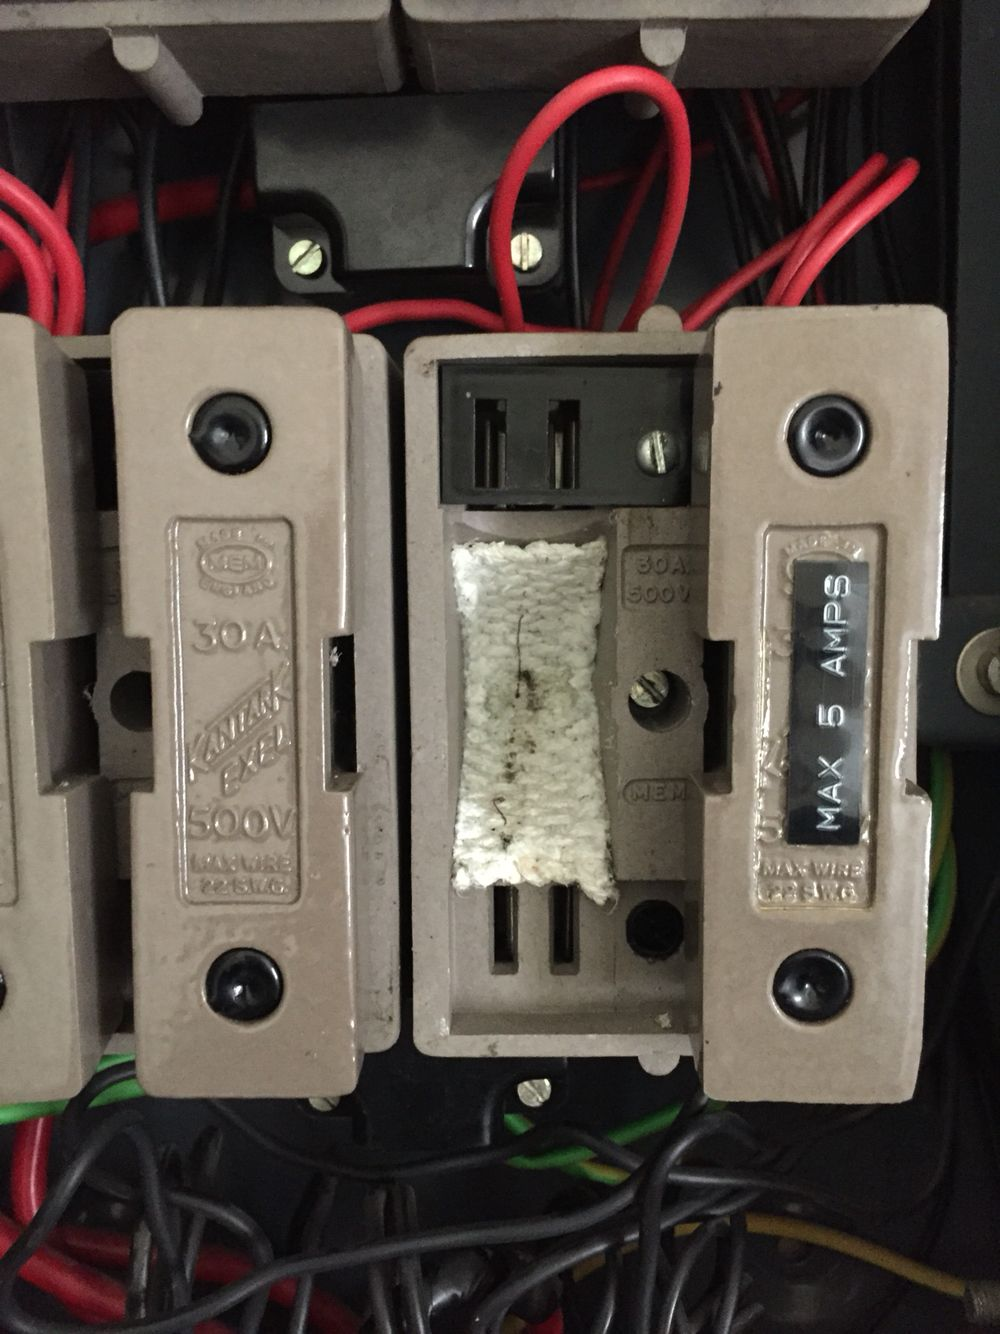 Asbestos fuse lining in old style 3 phase fuse board | Dodgy finds ...